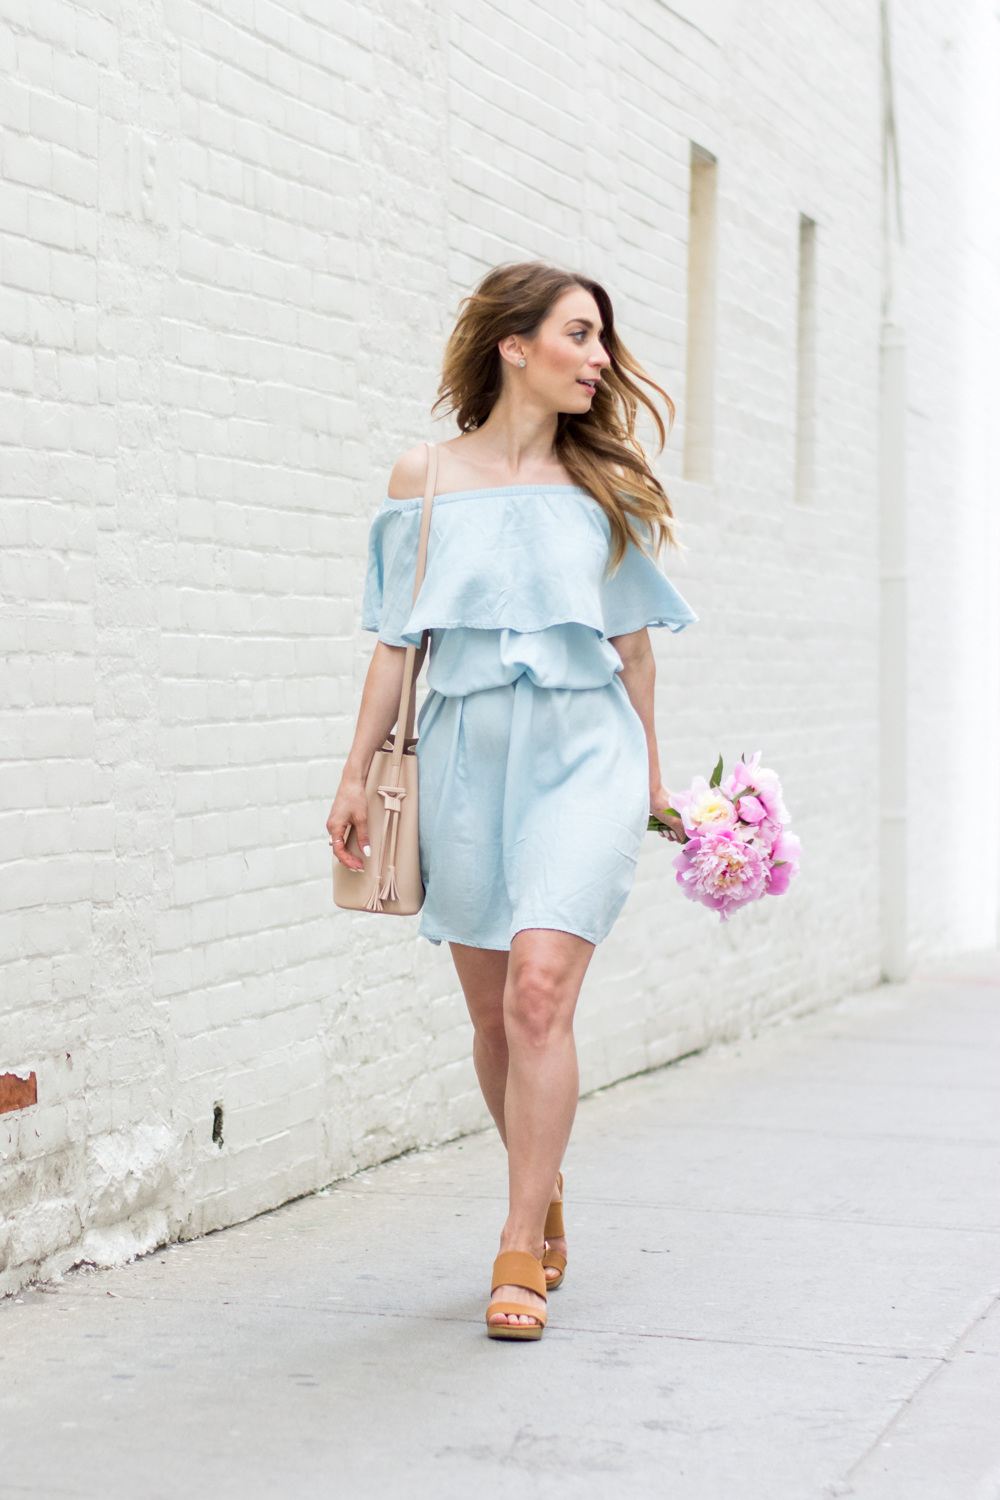 OOTD - Blue Off The Shoulder Dress | La Petite Noob | A Toronto-Based Fashion And Lifestyle Blog.